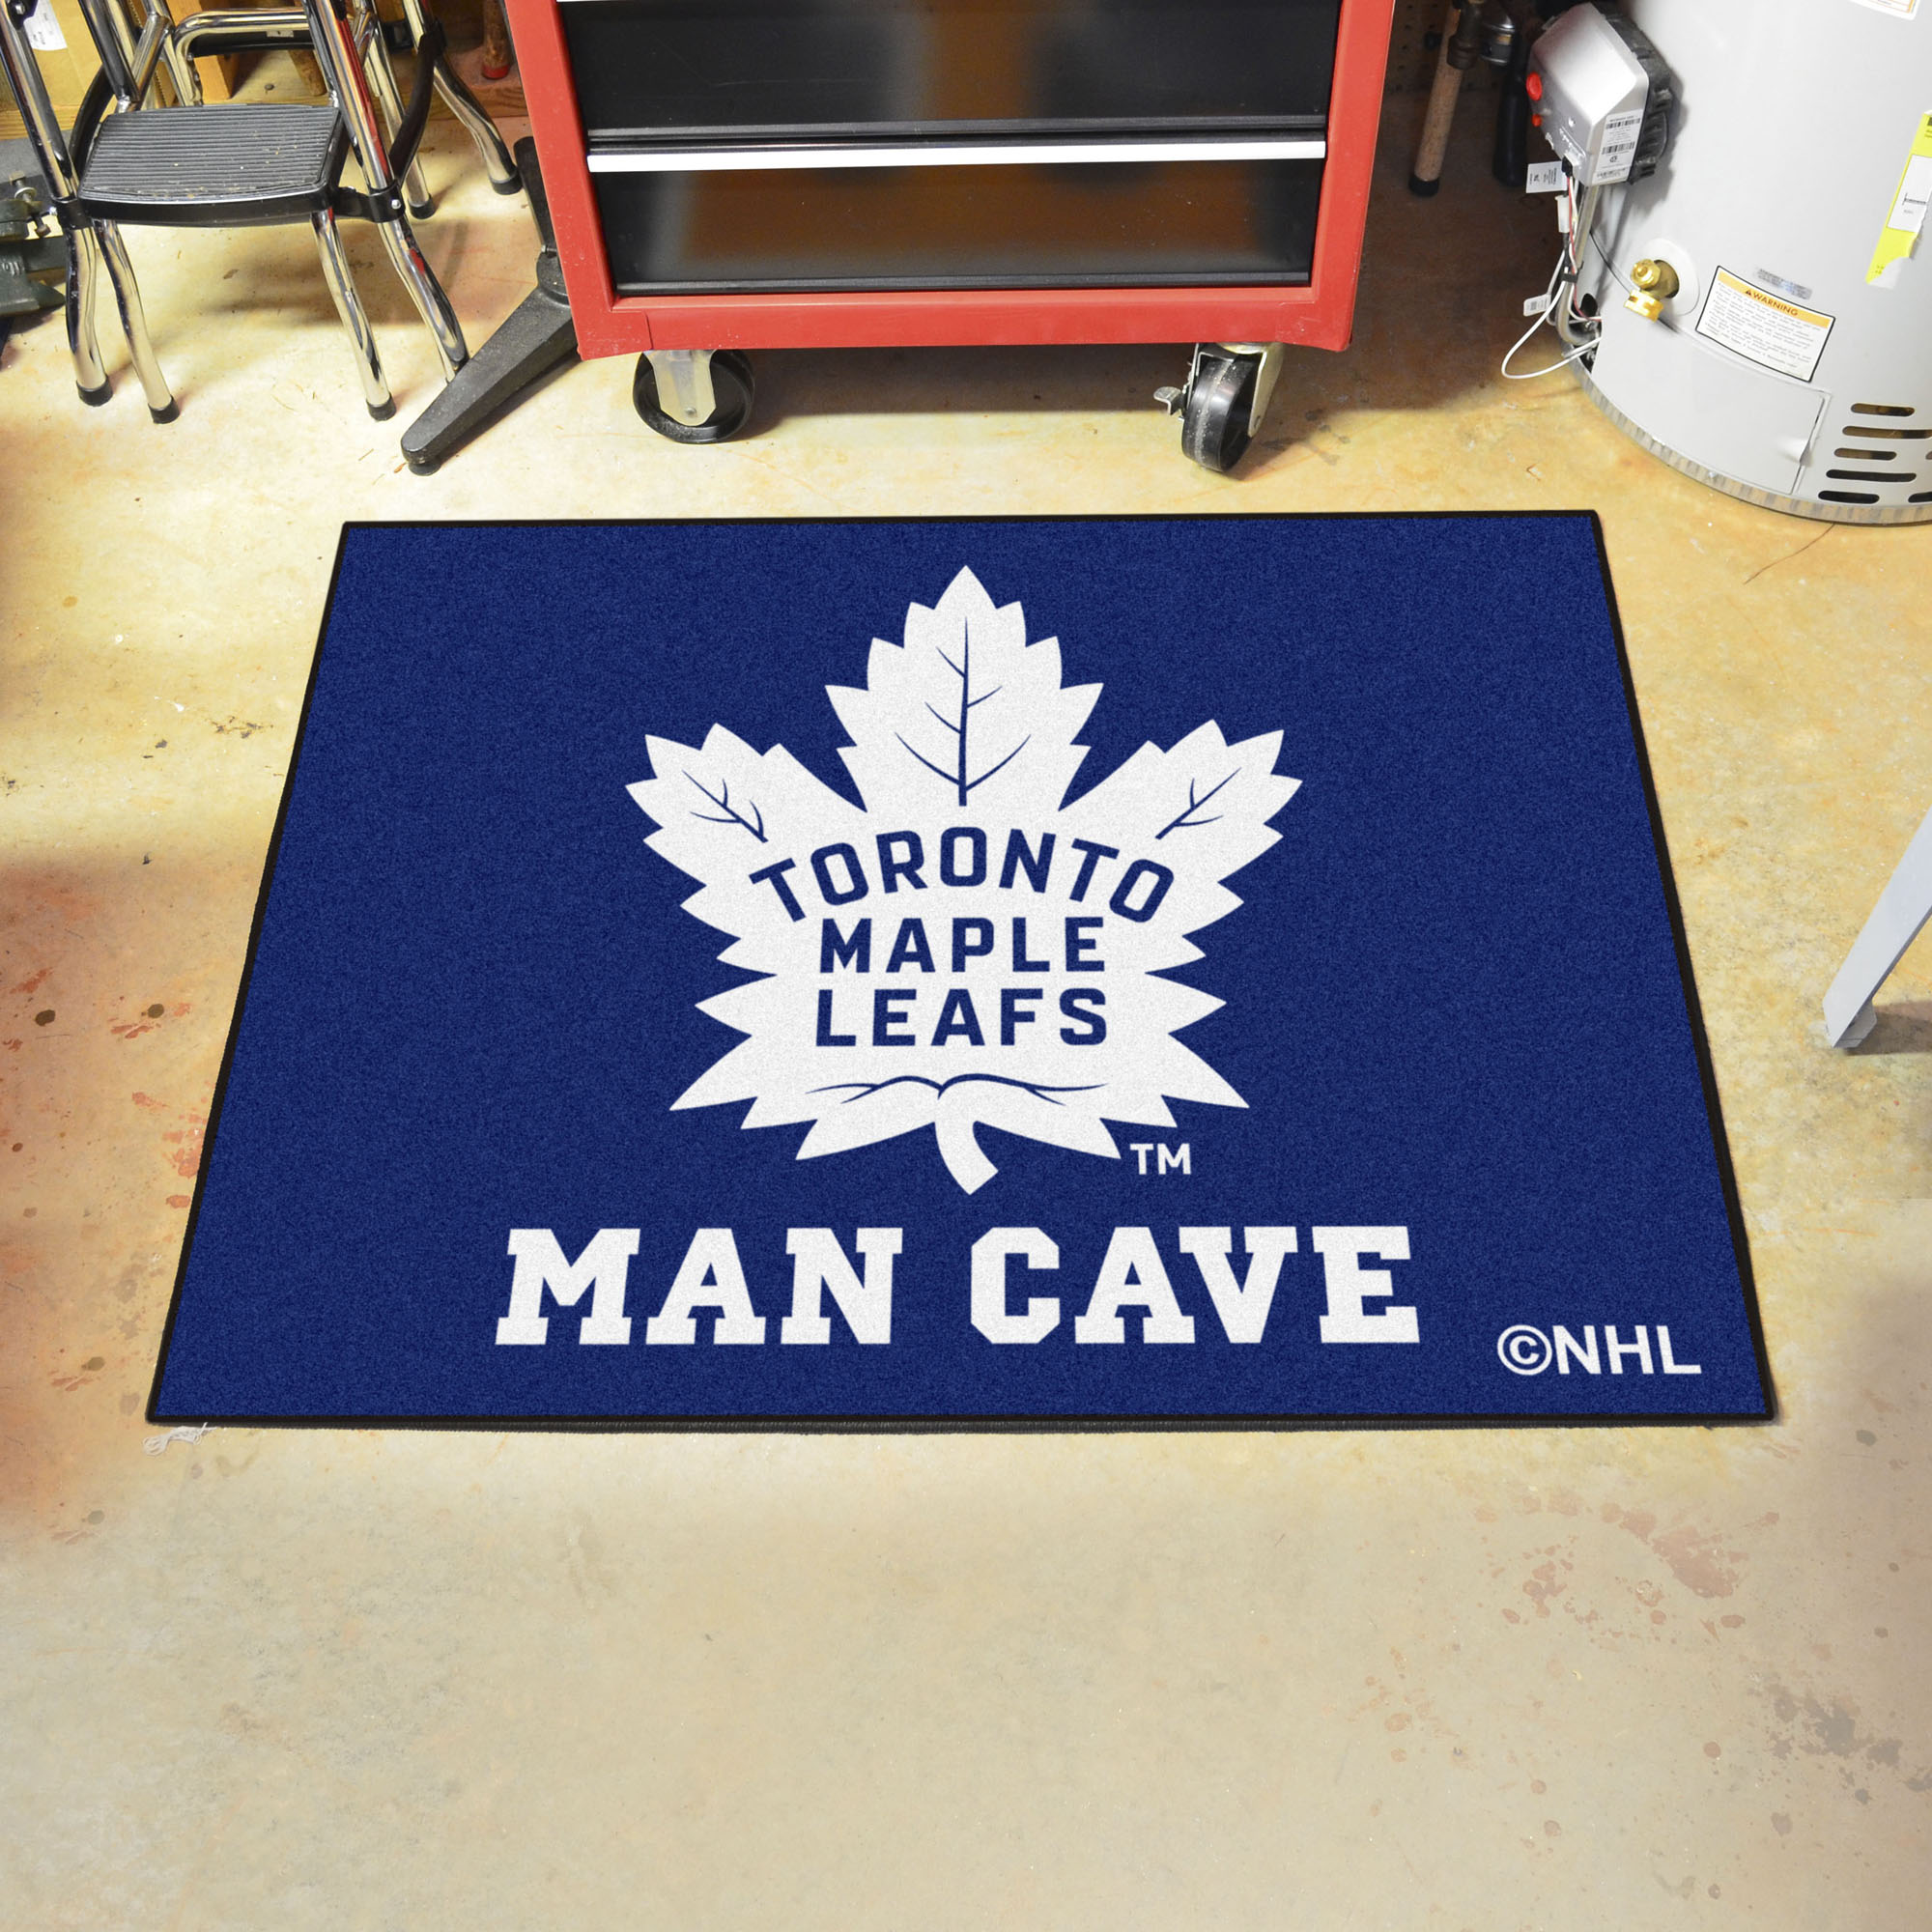 Toronto Maple Leafs ALL STAR 34 x 45 MAN CAVE Floor Mat